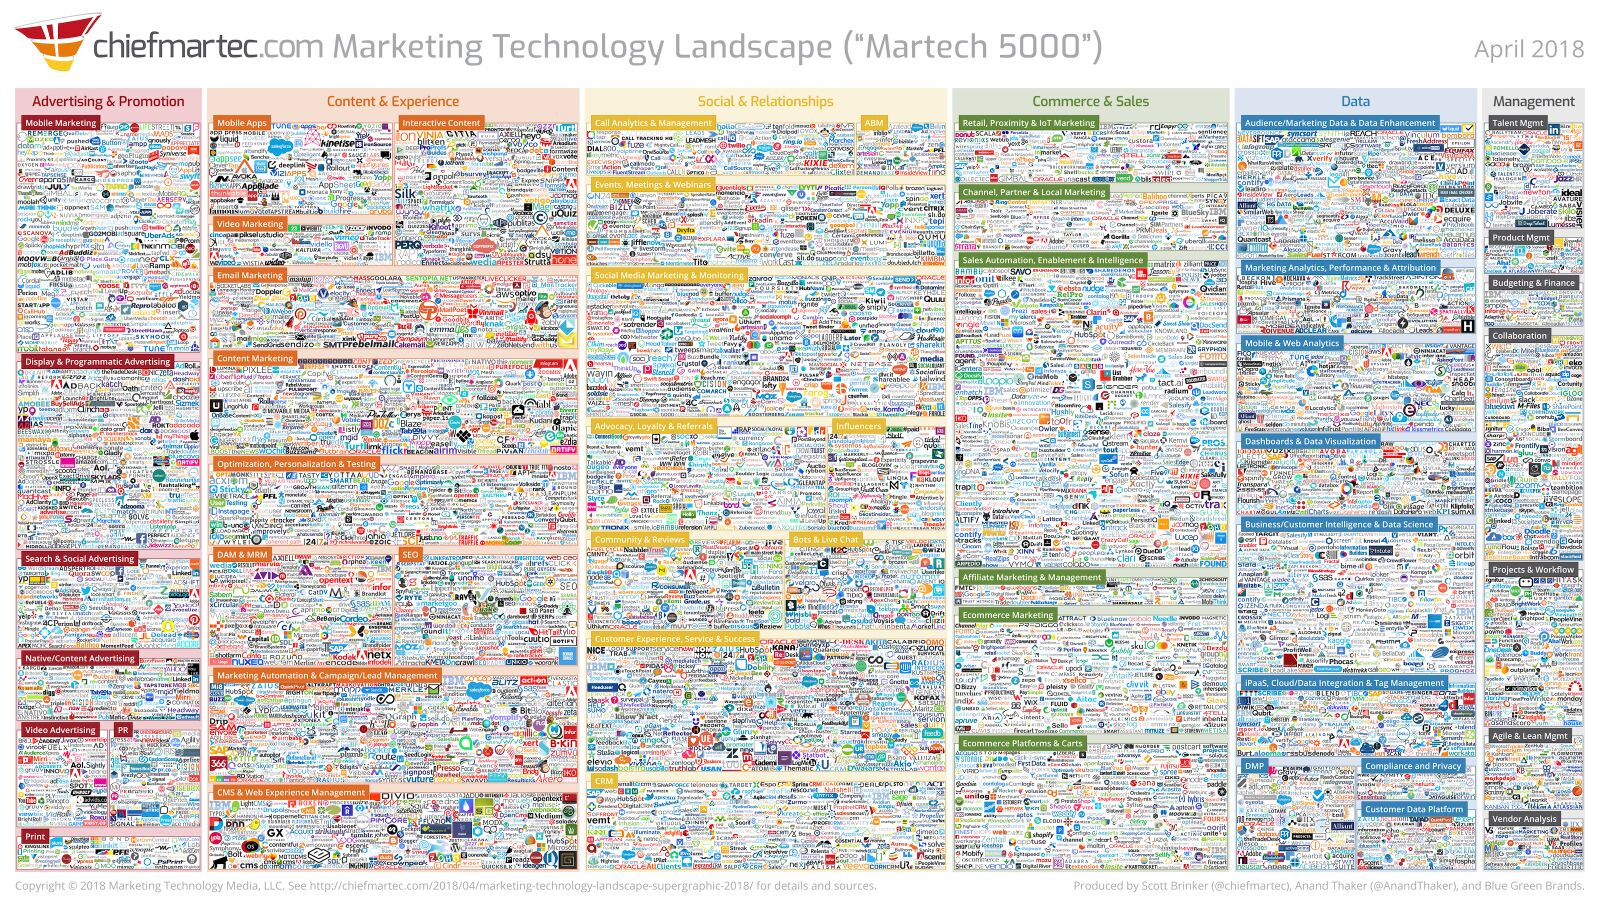 An infographic about marketing technology with all the marking technology available in 2018.